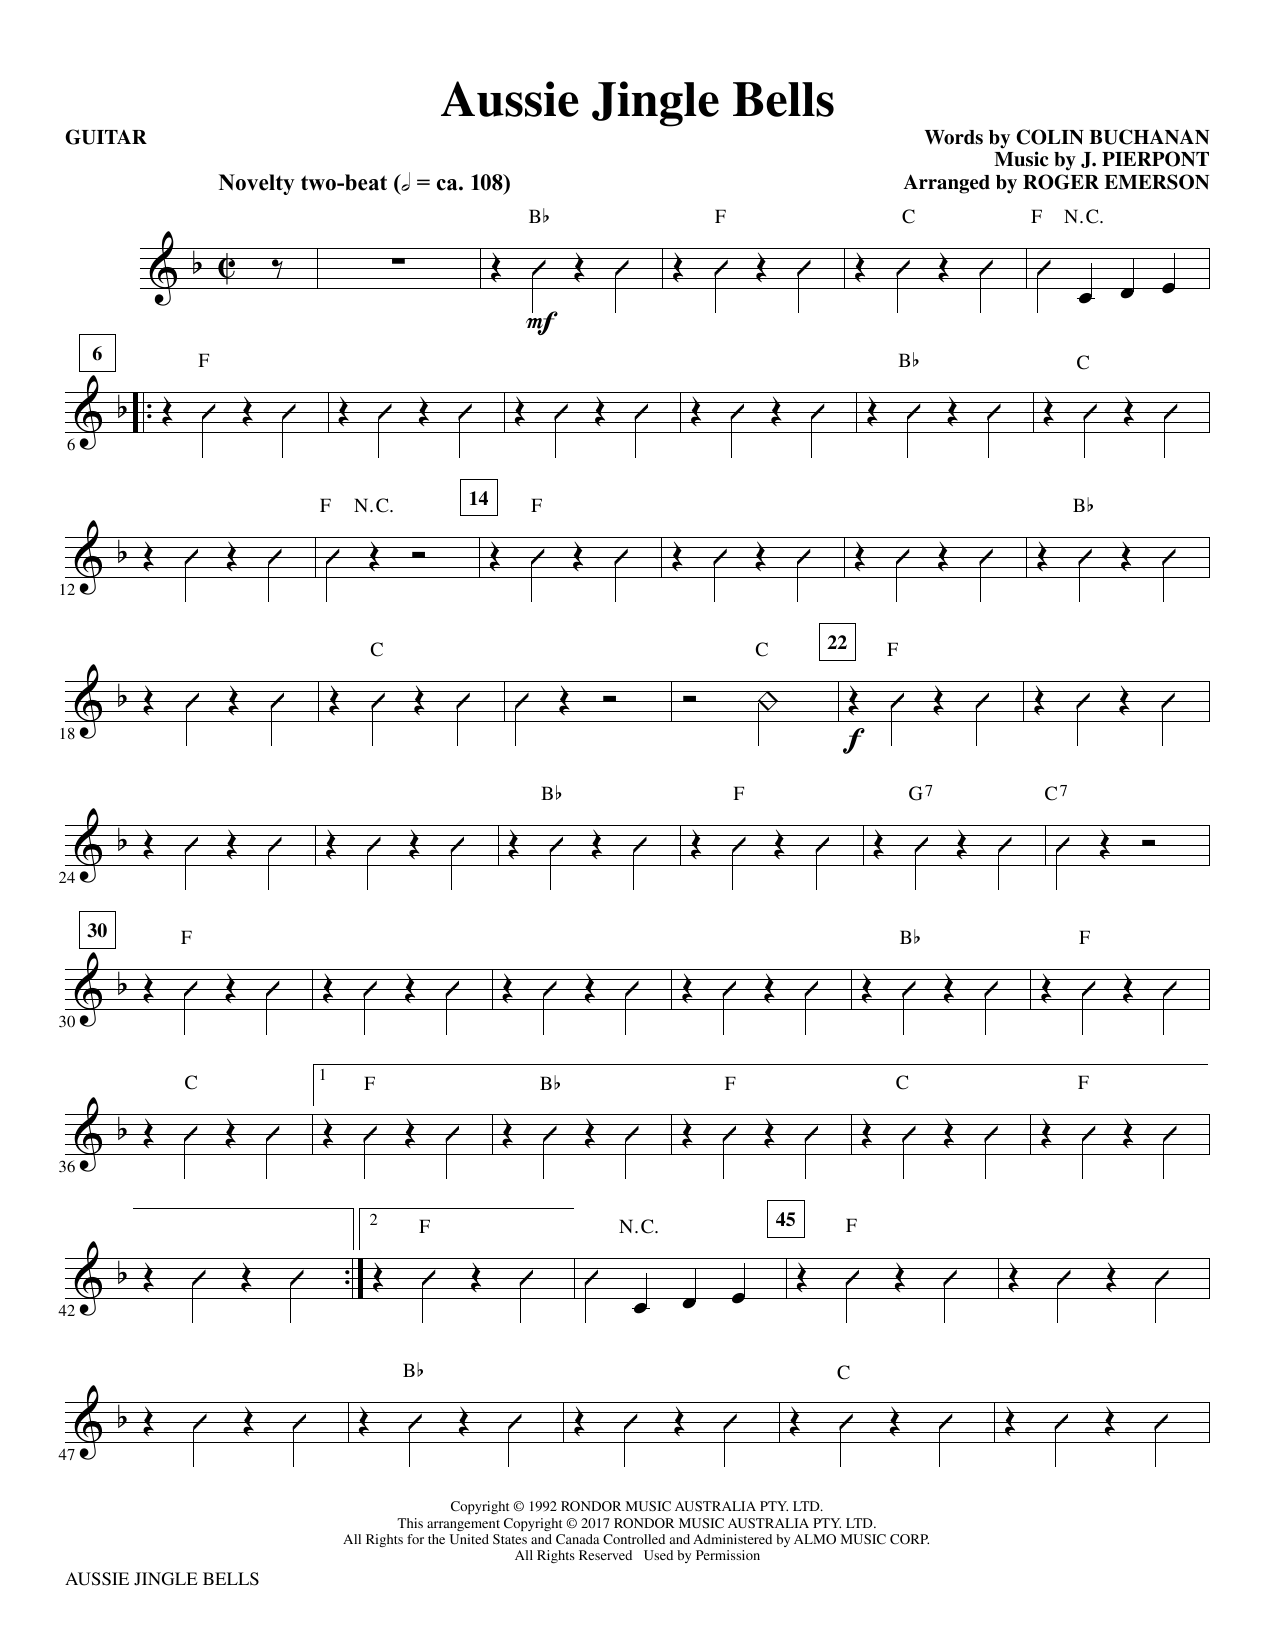 Roger Emerson Aussie Jingle Bells - Guitar sheet music notes and chords. Download Printable PDF.